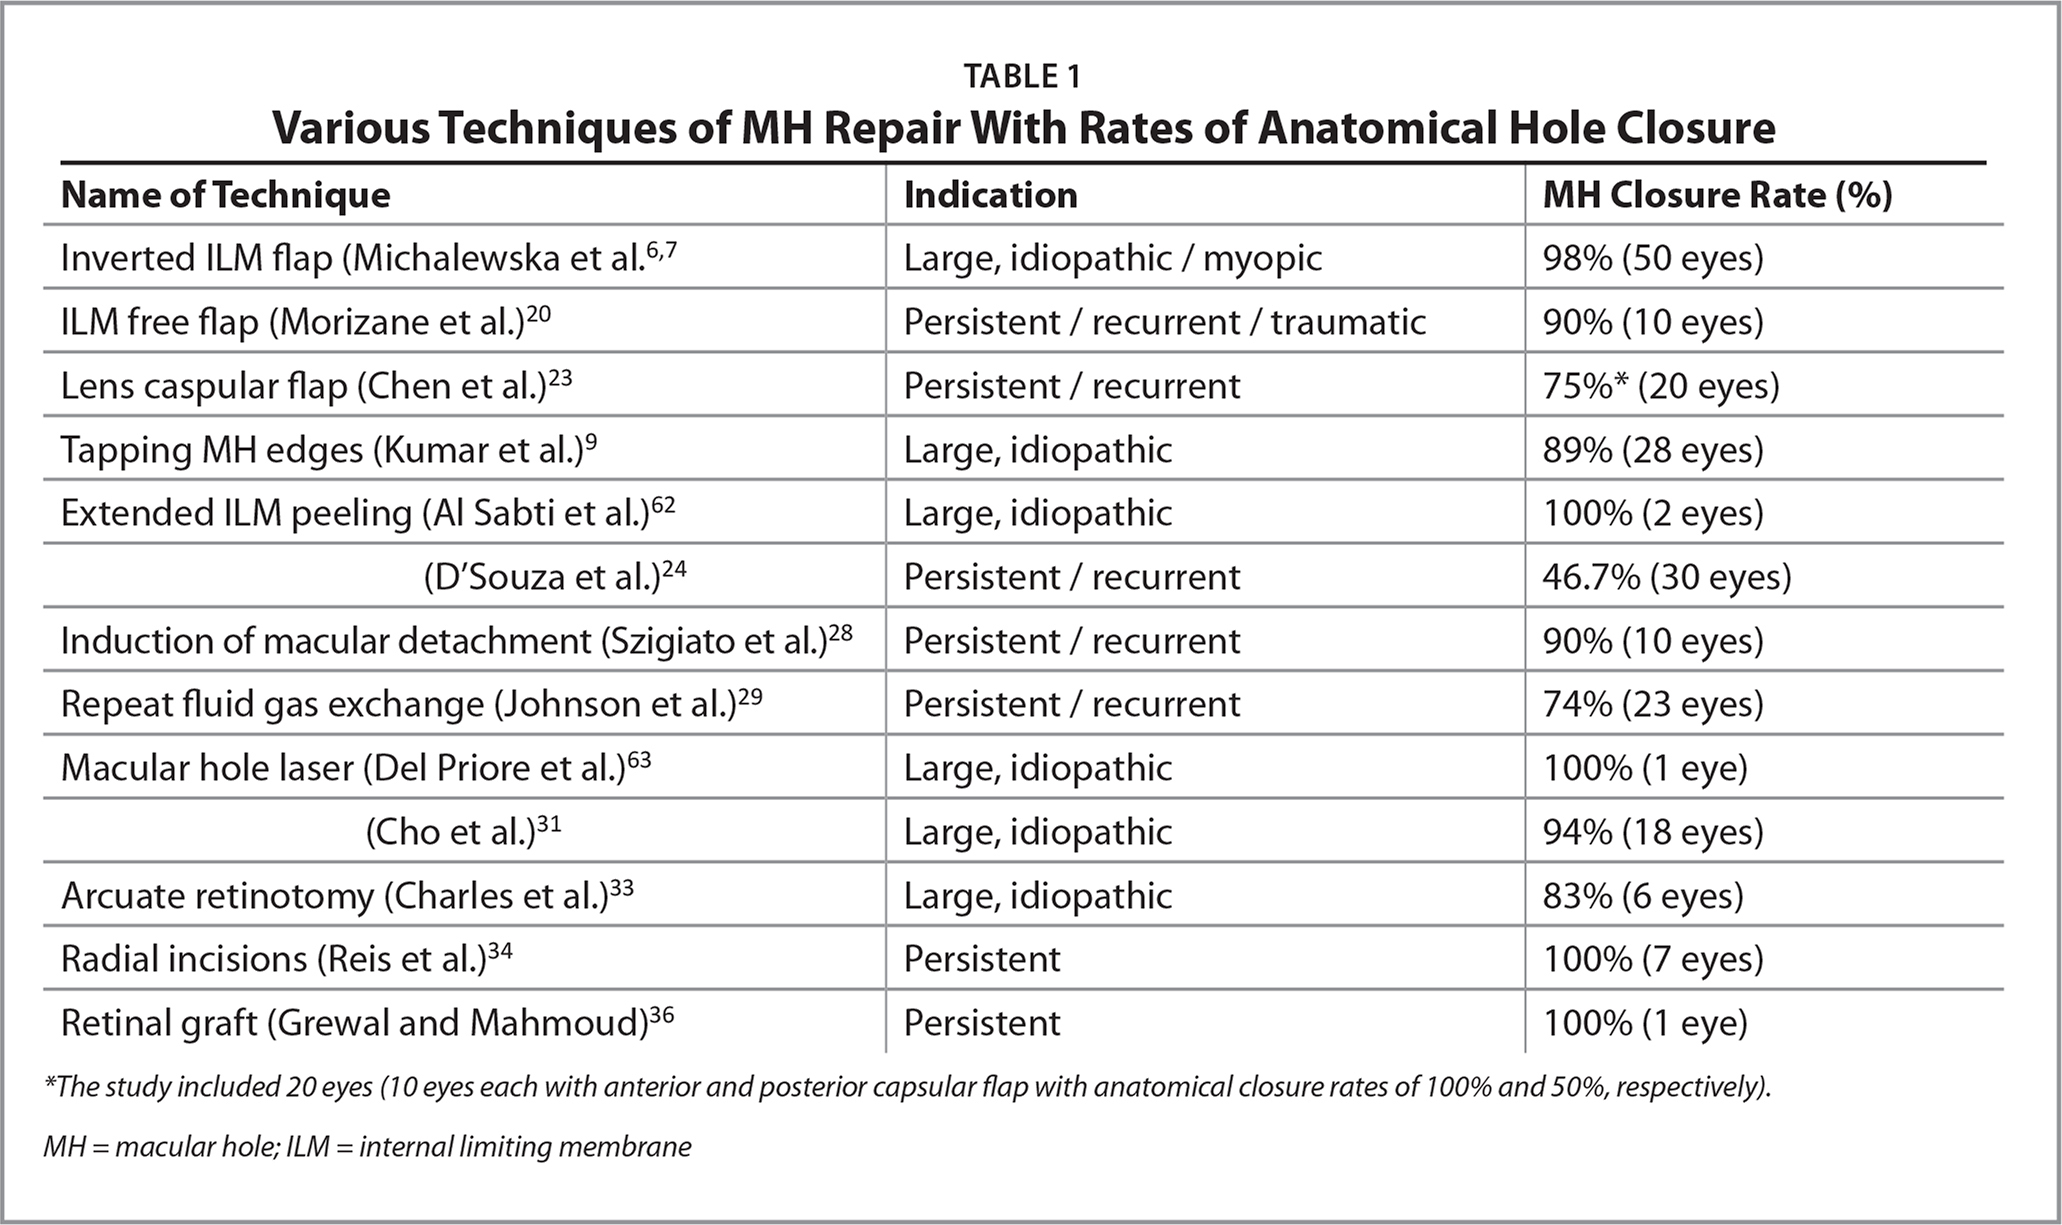 Various Techniques of MH Repair With Rates of Anatomical Hole Closure